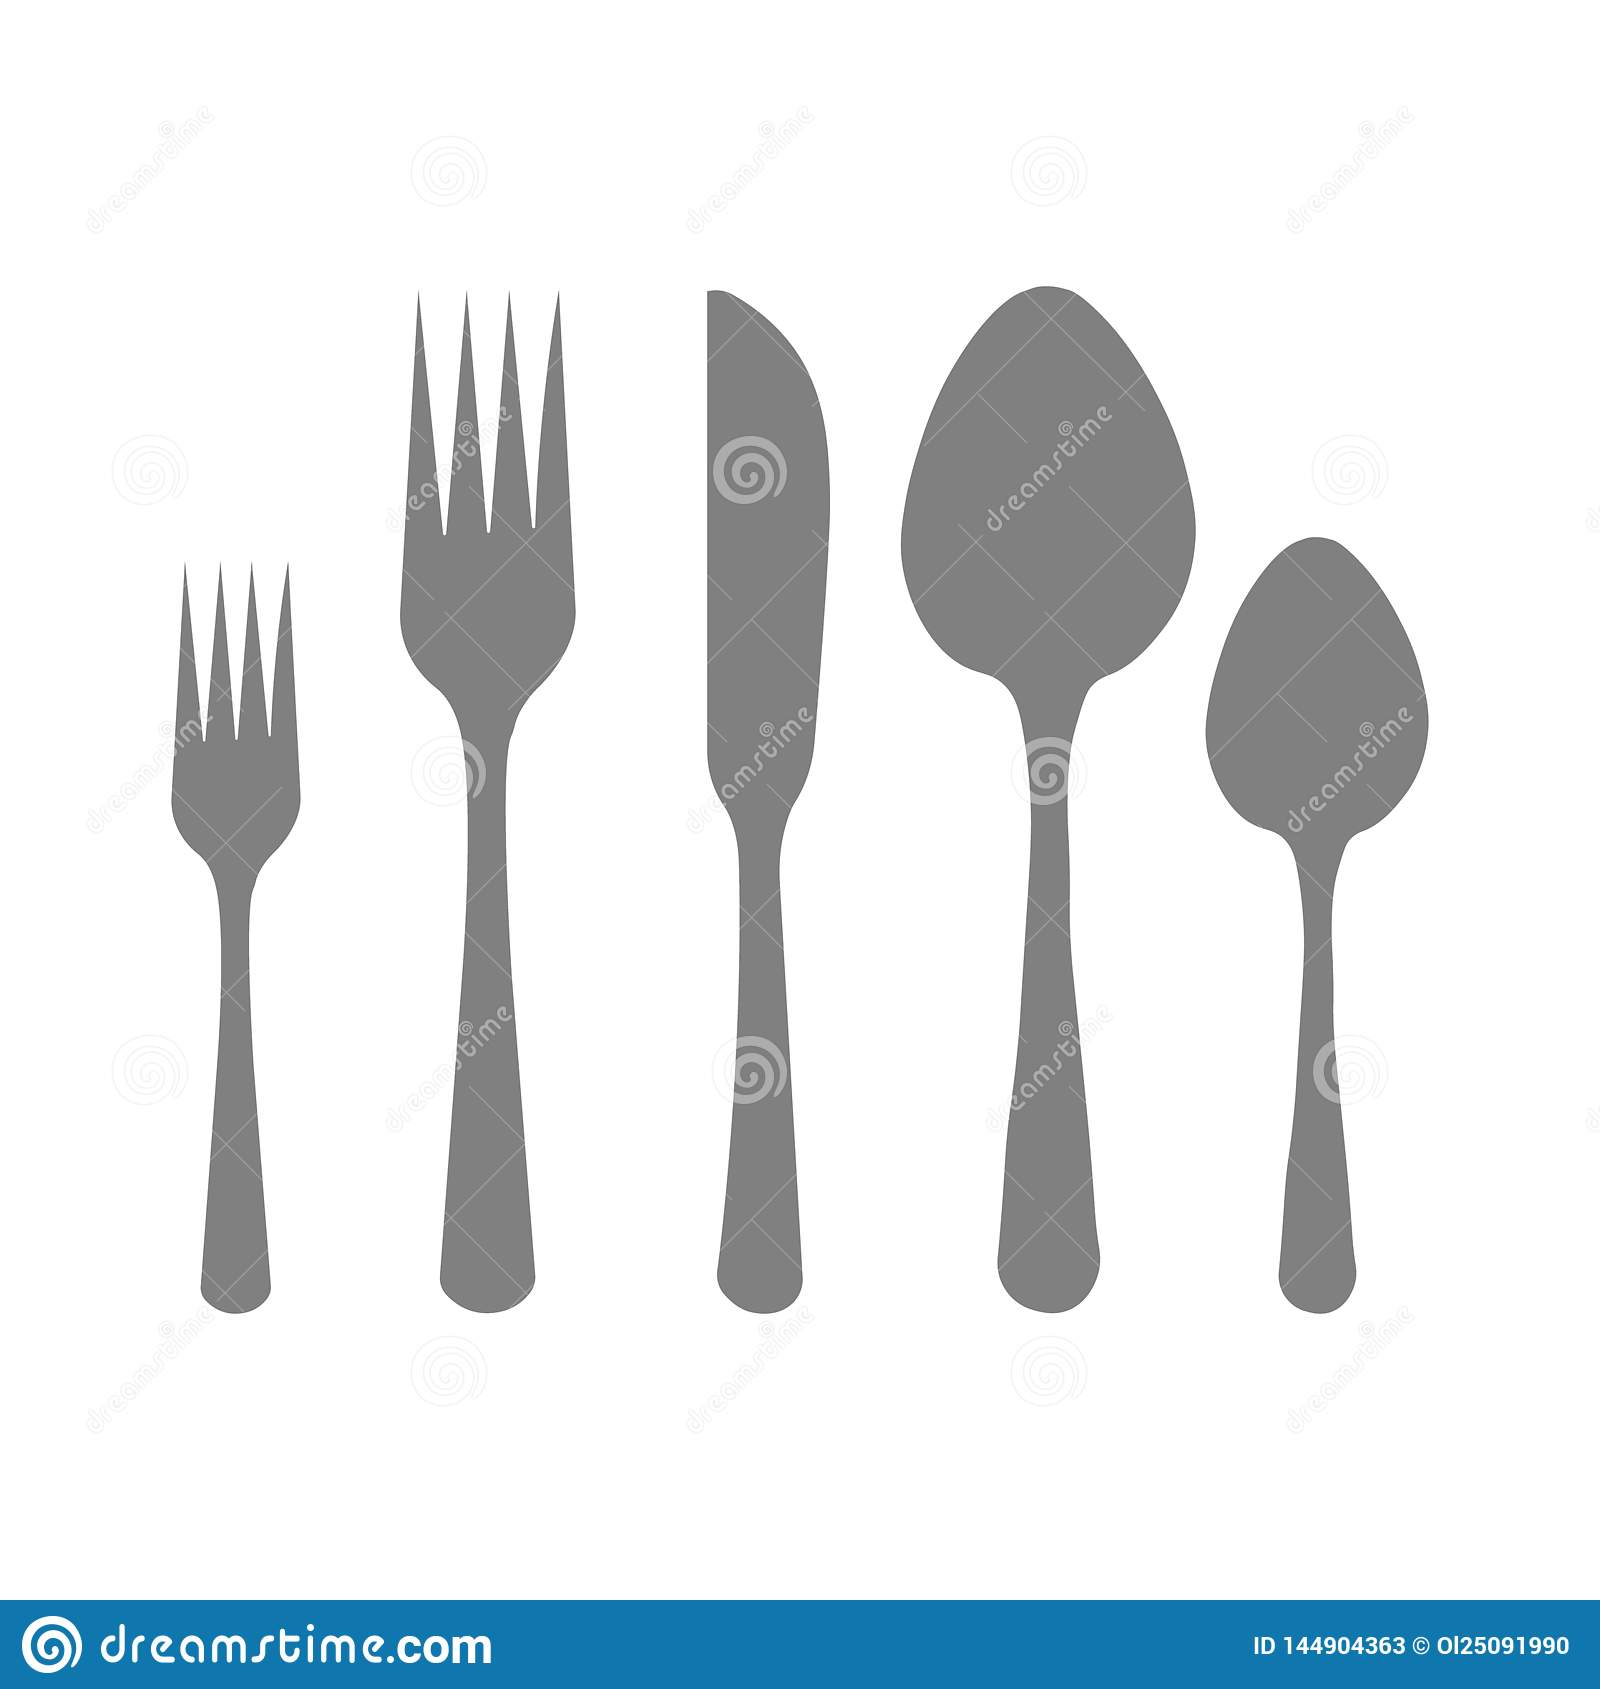 Cutlery silhouettes. Spoon, knife, forks